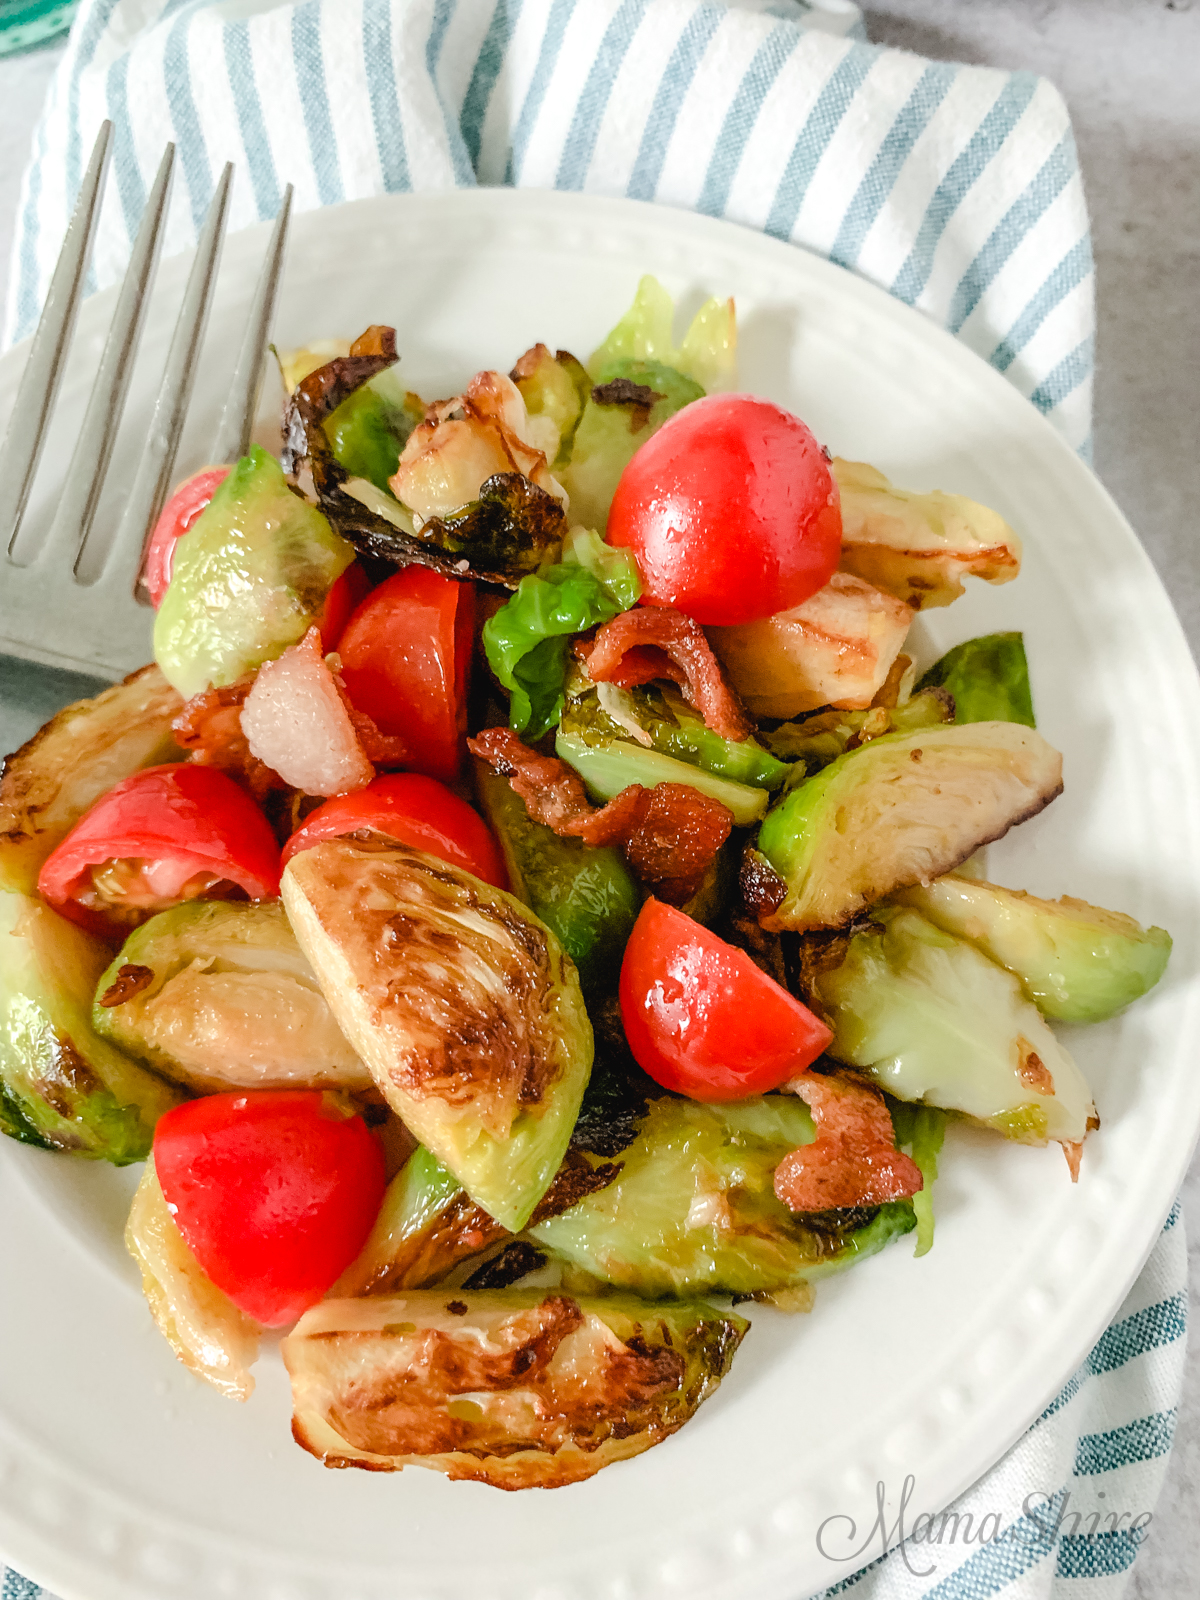 A plate of Brussels sprouts with bacon and tomatoes that tastes like a BLT.